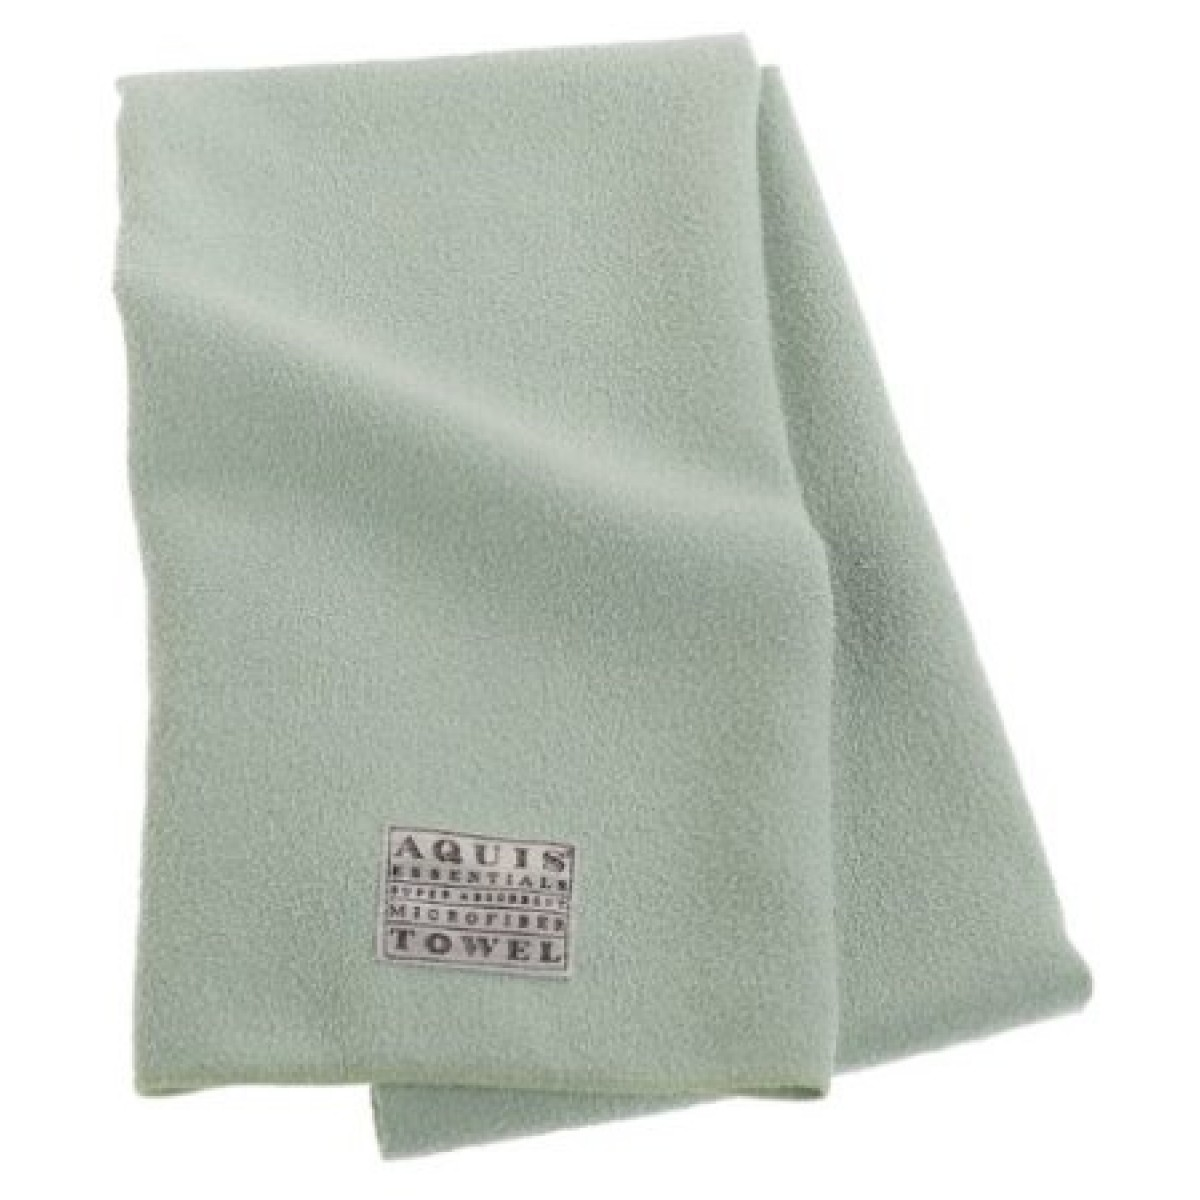 Aquis Hair Towel Review – The Latest Style